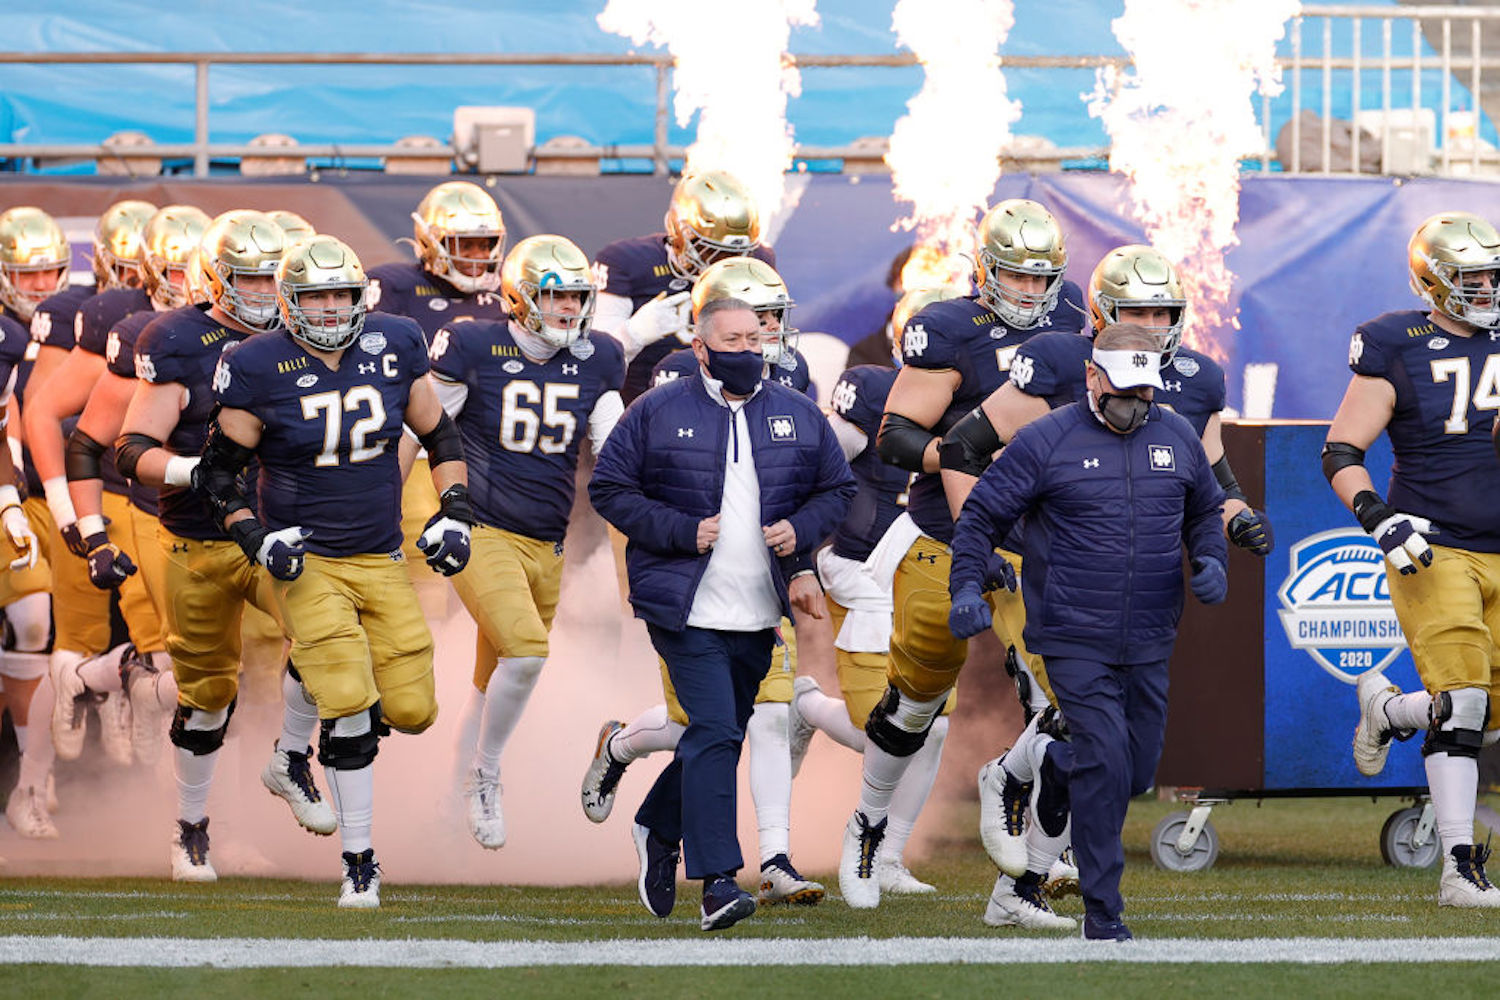 Why Did Notre Dame Get Into the College Football Playoff Over Texas A&M?